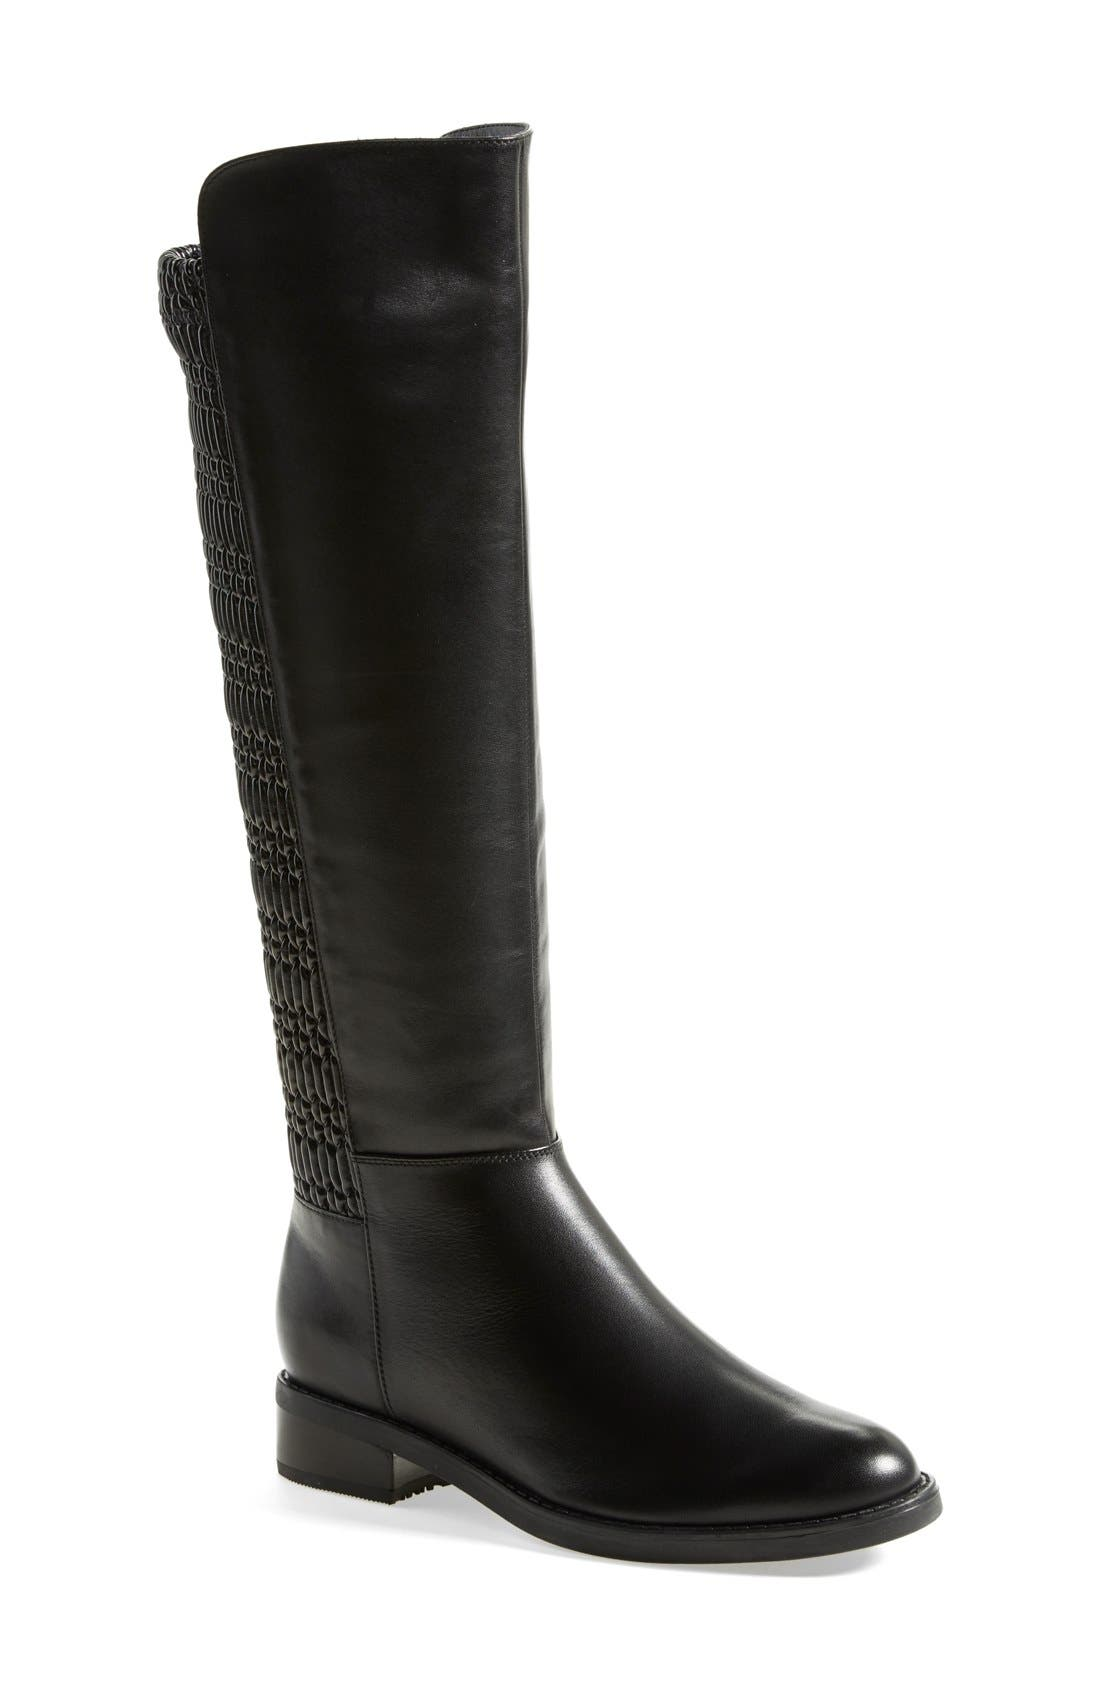 'Elenor' Waterproof Riding Boot,                             Main thumbnail 1, color,                             001